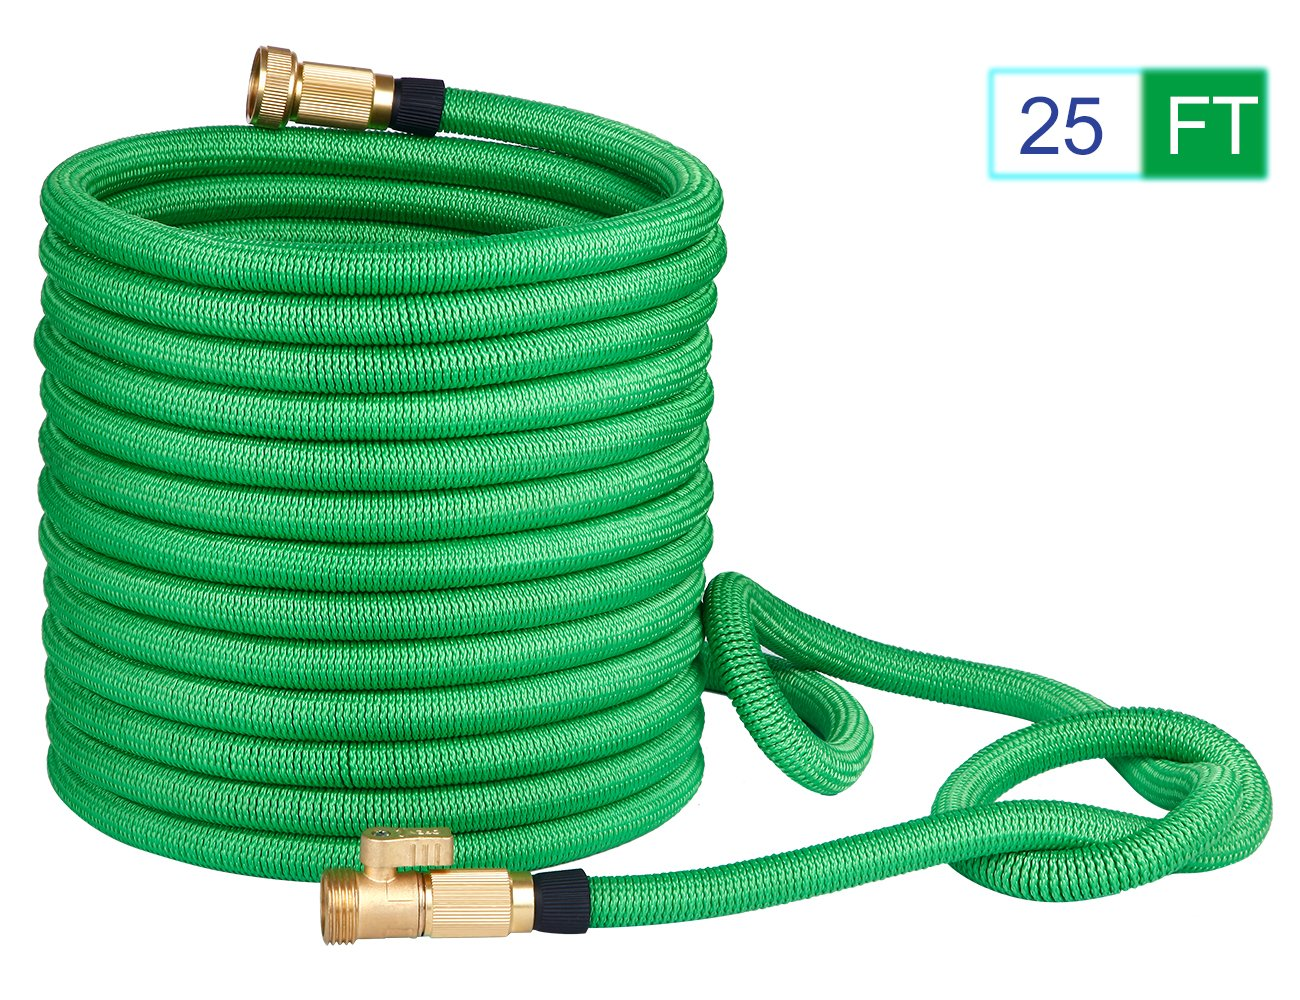 PEGZOS 2018 New Improved Expandable Garden Hoses Expanding Water Hose with Double Latex Core, Extra Density Outside Woven, Solid Brass Connector for Car Outdoor Lawn Use (25FT, Green)